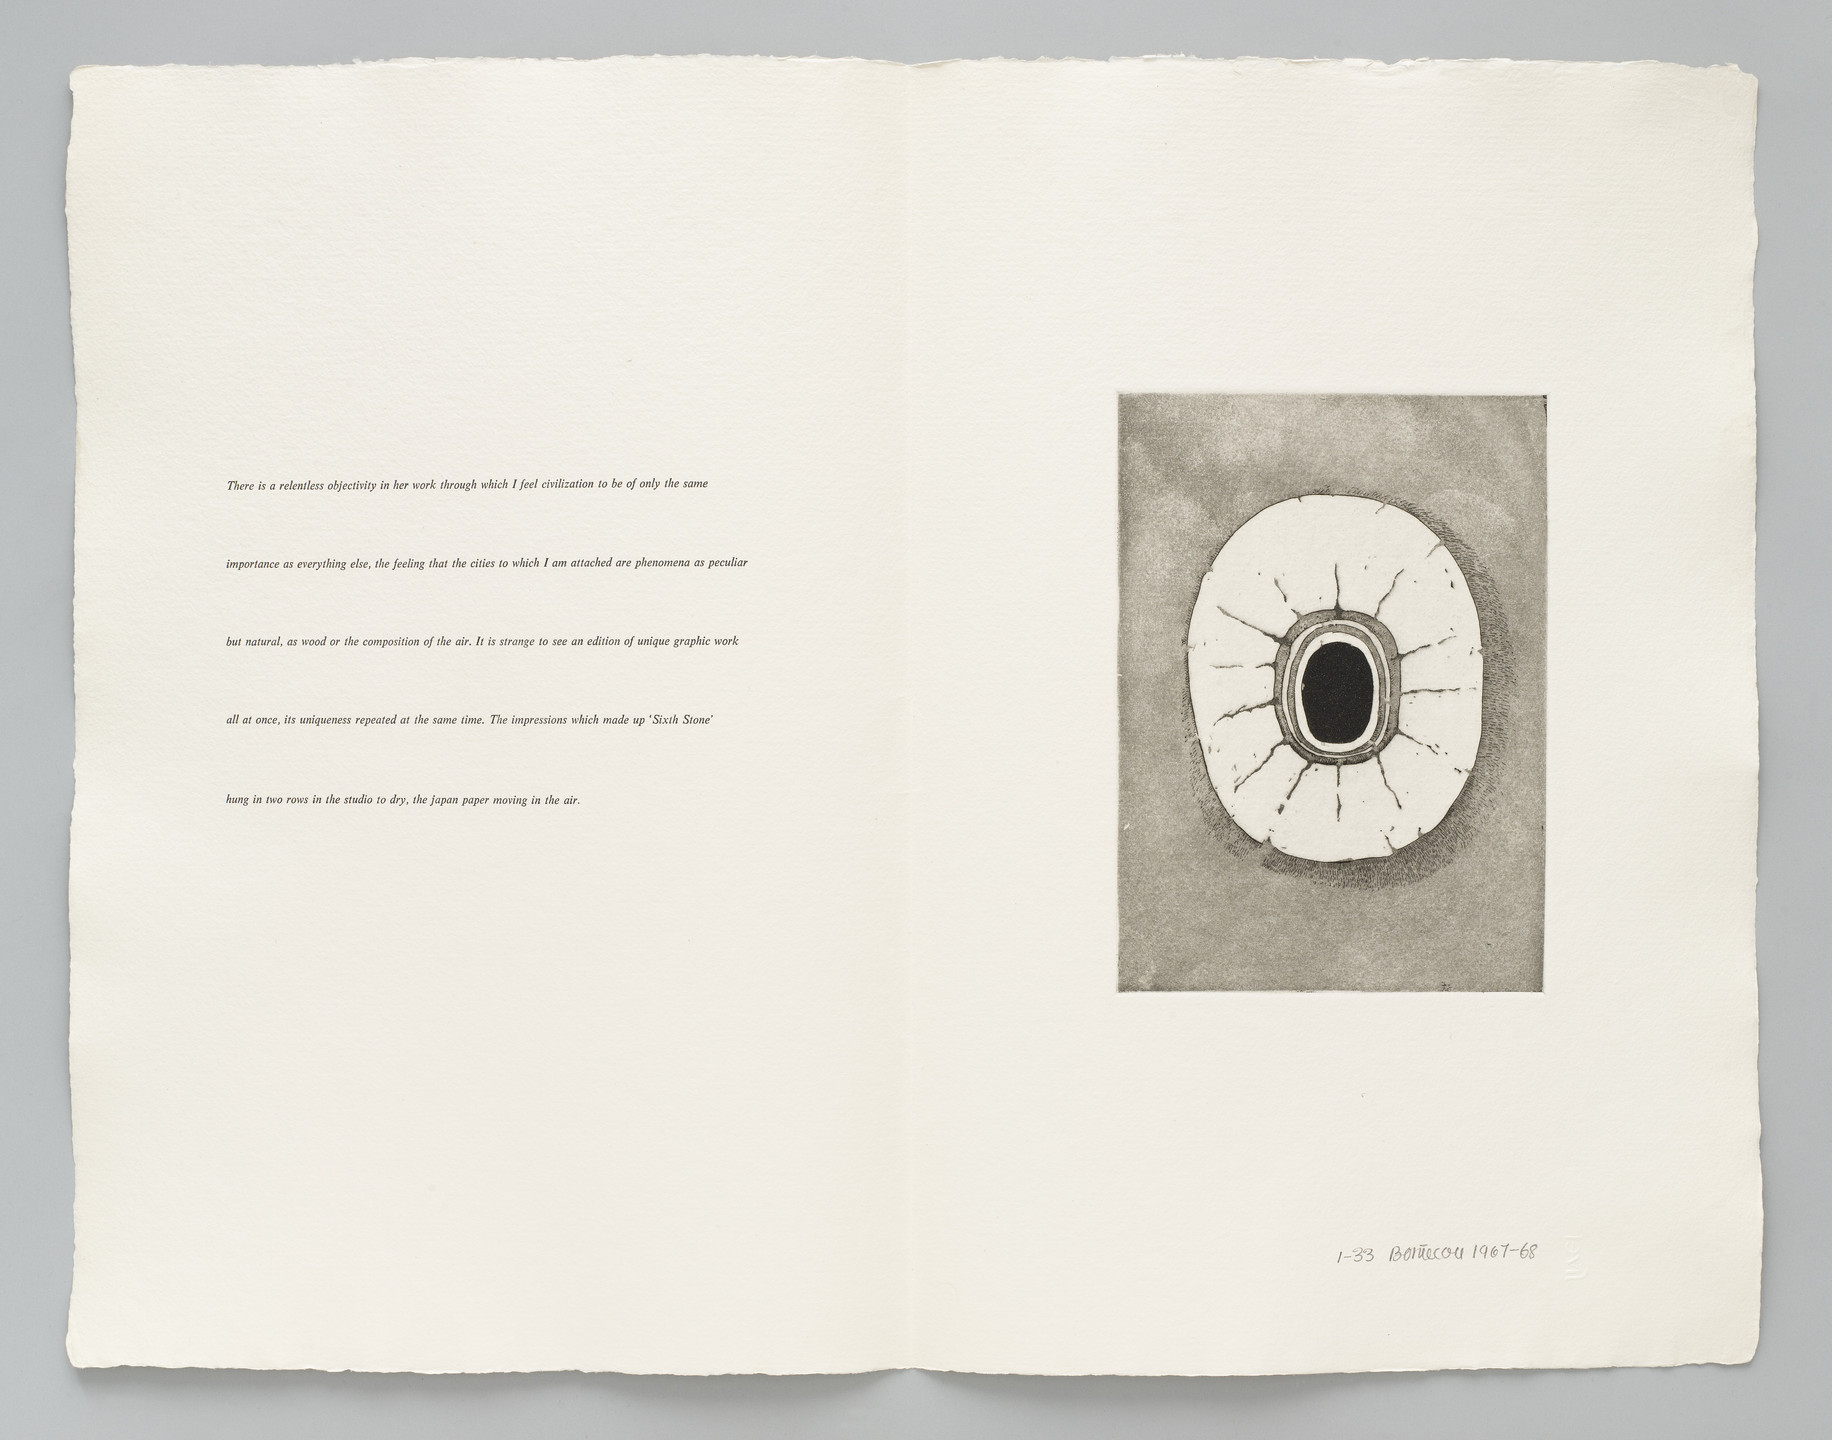 Lee Bontecou. Plate 4 (folio 10) from Fifth Stone, Sixth Stone. 1967–68, published 1968